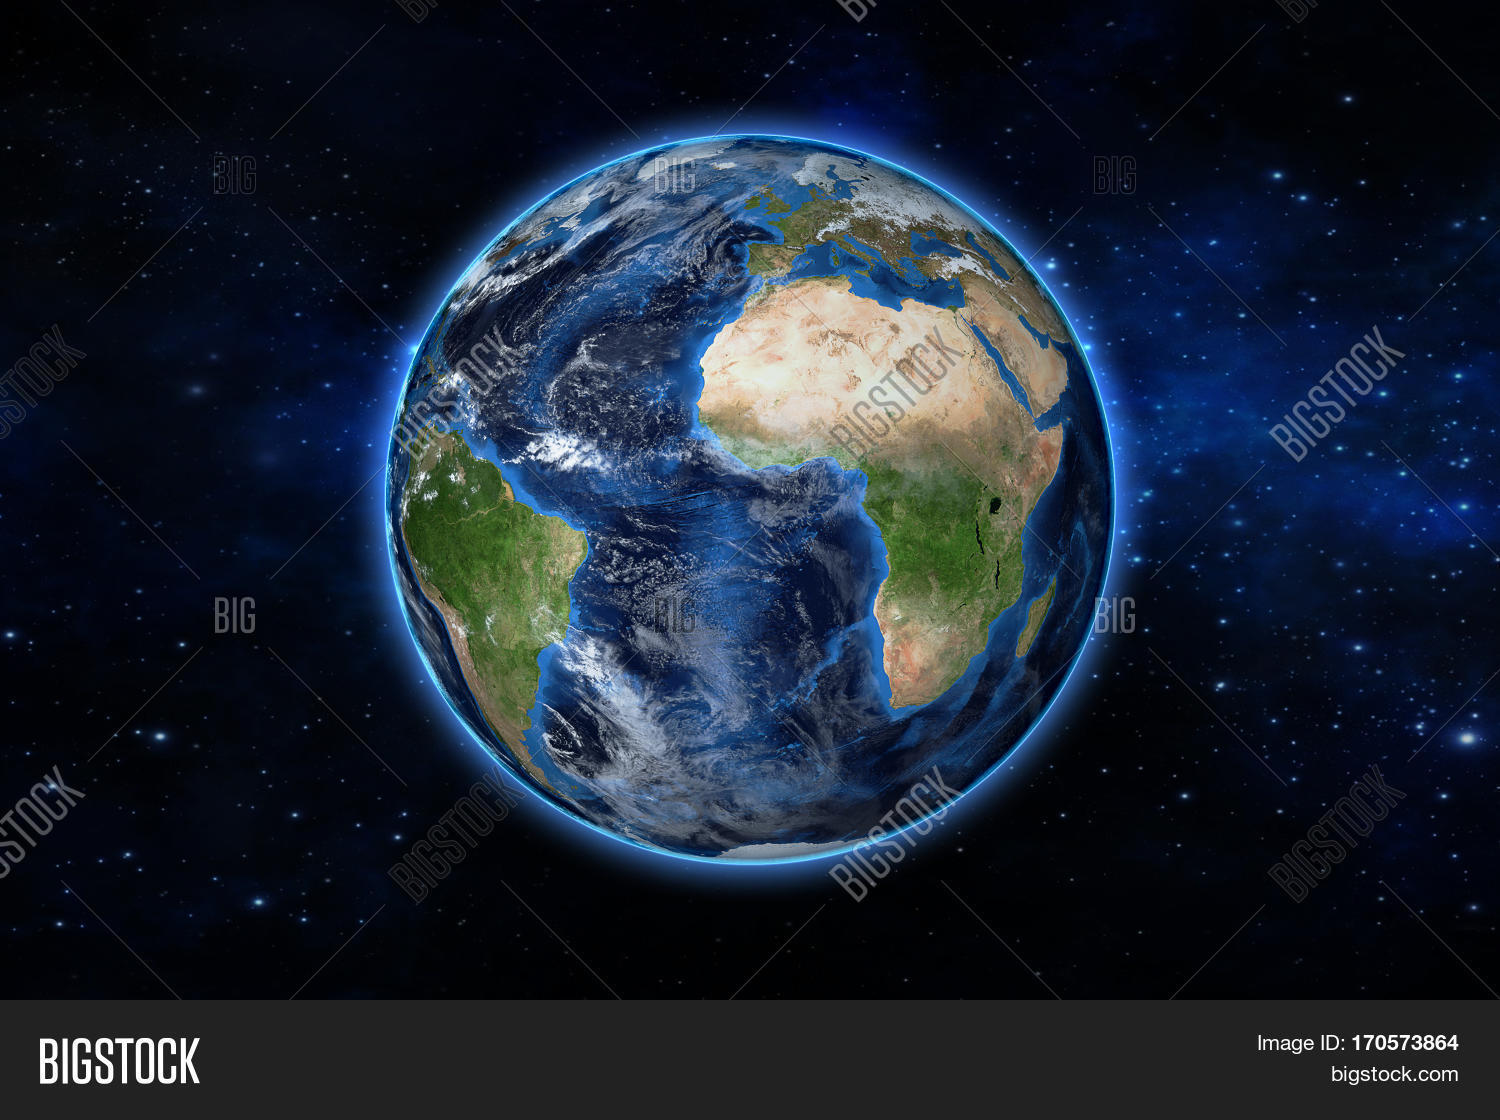 Blue planet earth space showing image photo bigstock blue planet earth from space showing america and africa usa globe world with blue sciox Image collections